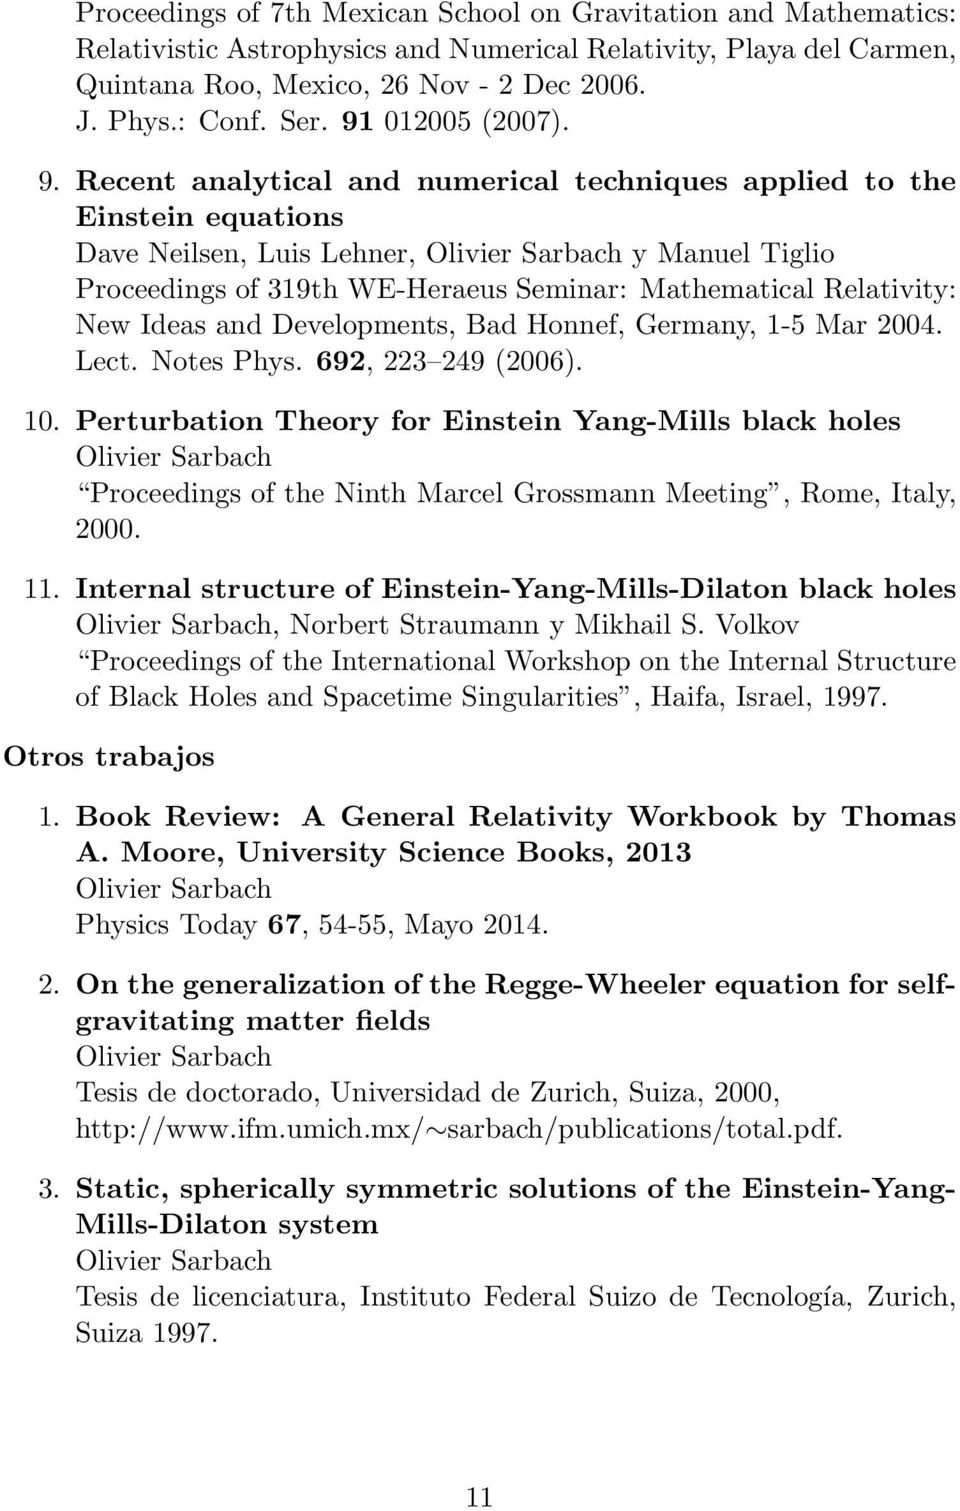 Recent analytical and numerical techniques applied to the Einstein equations Dave Neilsen, Luis Lehner, Olivier Sarbach y Manuel Tiglio Proceedings of 319th WE-Heraeus Seminar: Mathematical